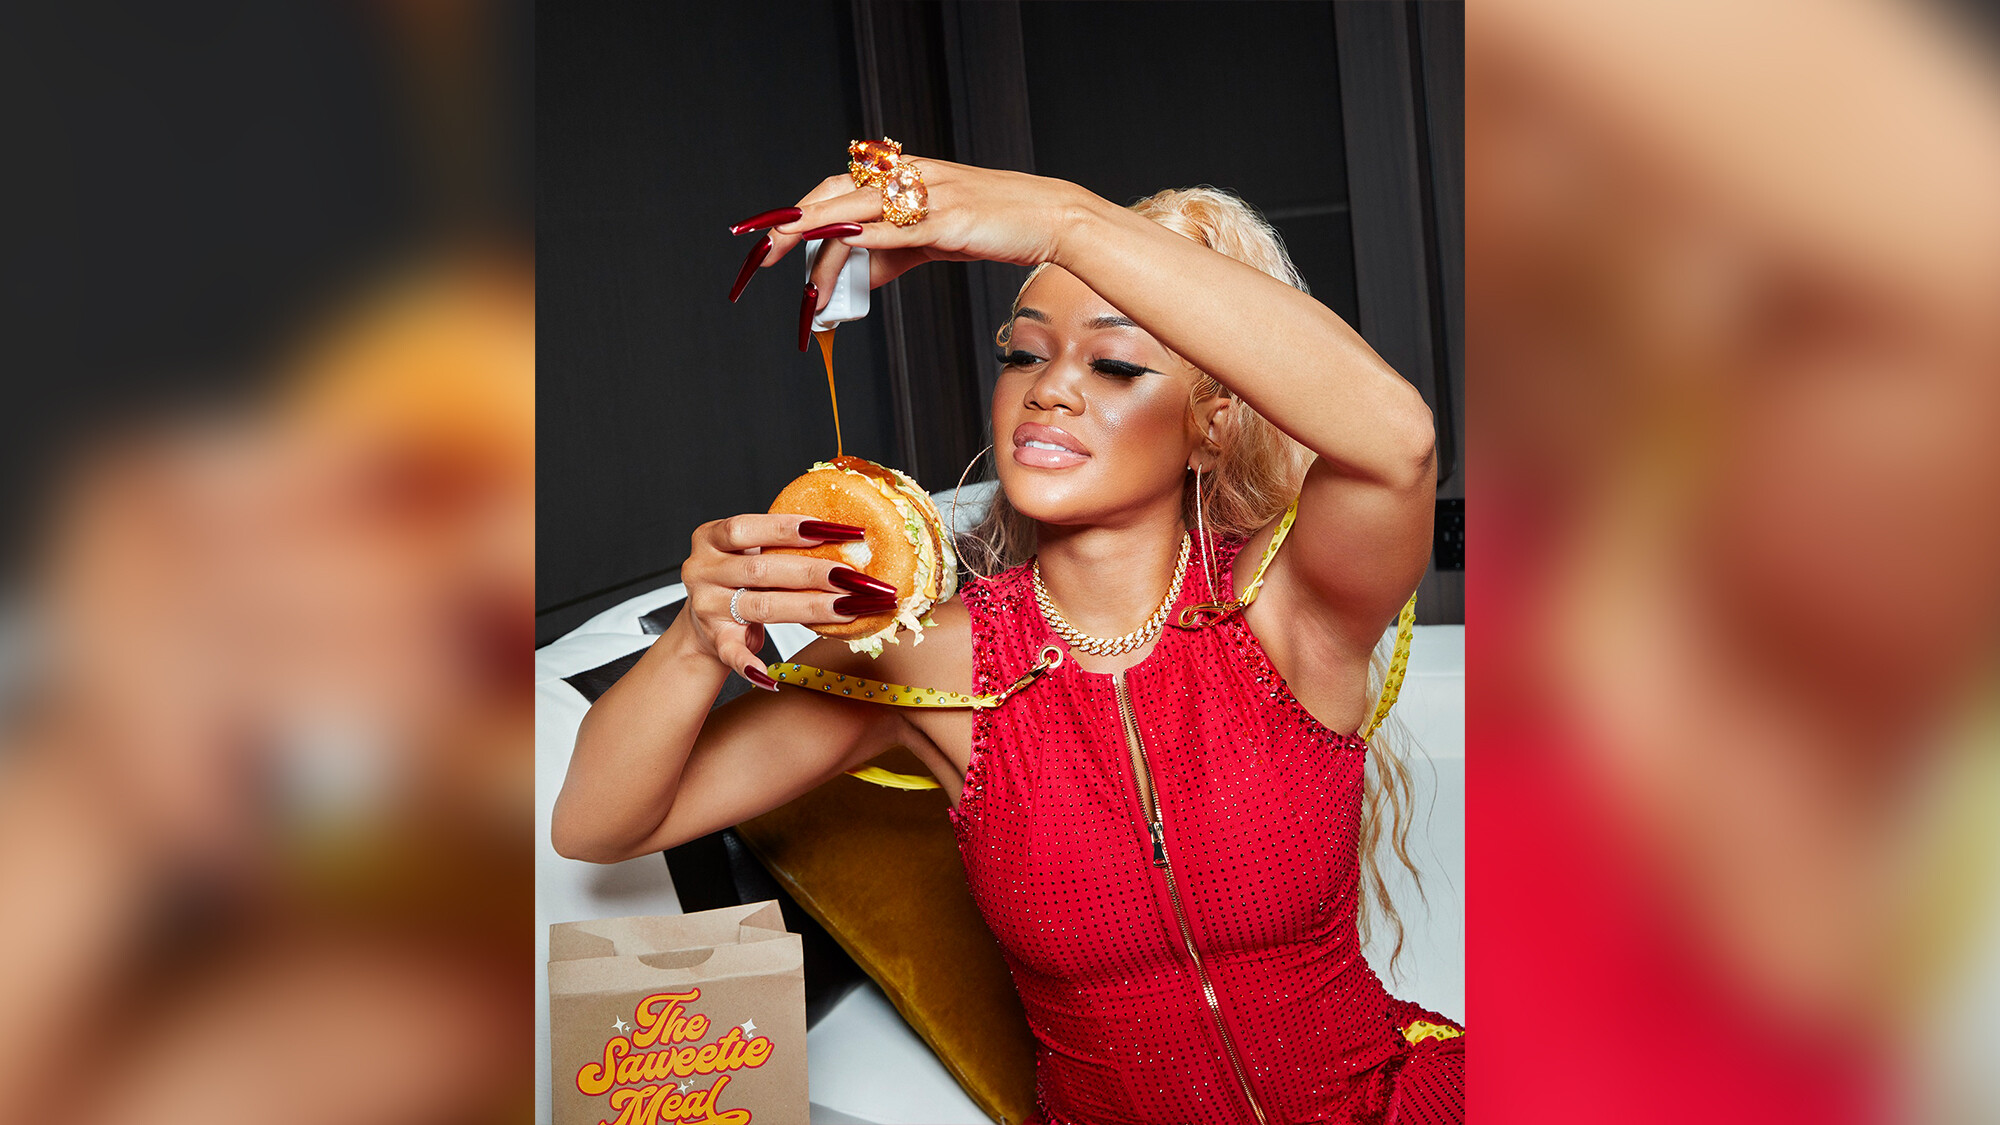 McDonald's replaces BTS with Saweetie for its next celebrity meal